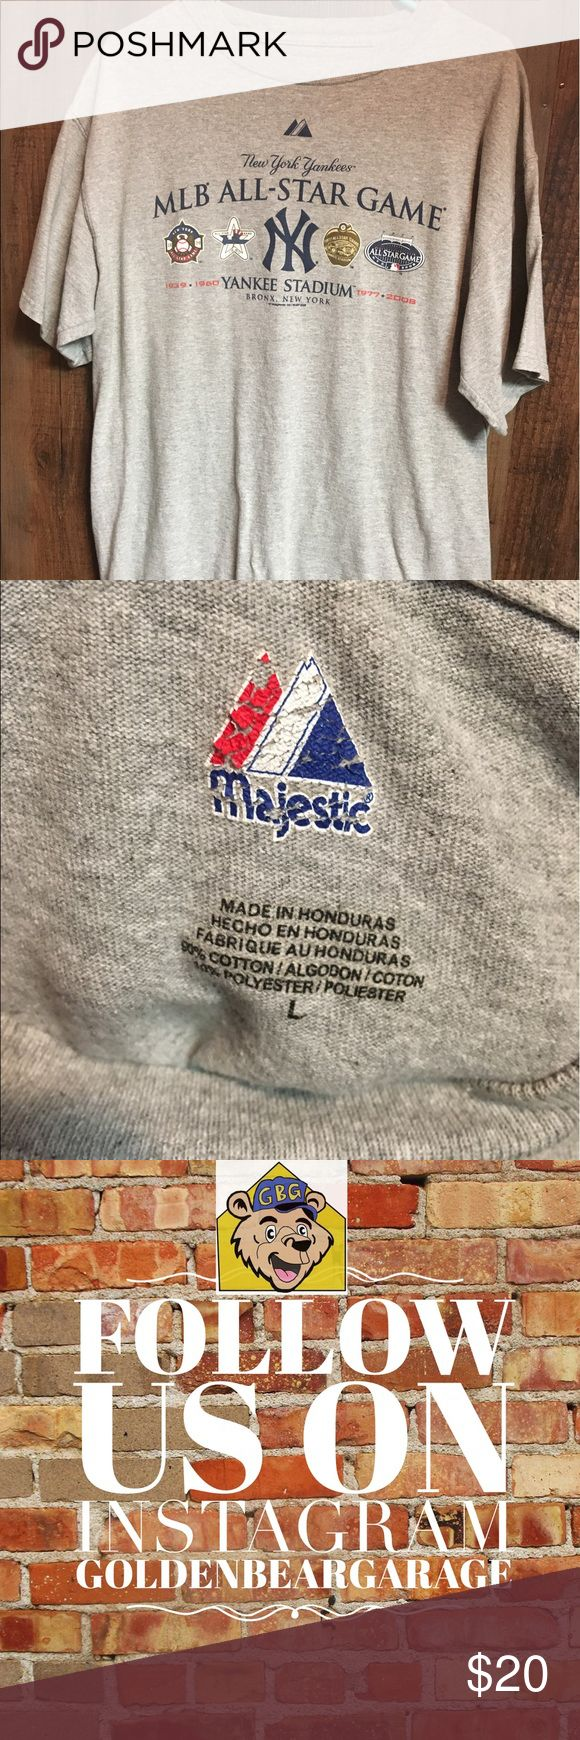 Vintage New York Yankees MLB All Star Game Tee Gently worn Majestic 2008 MLB All Star Game Teeshirt. This shirt commemorates the last All Star Game played in Old Yankee Stadium. Can be worn as Men's Large or Women's XL. Majestic Shirts Tees - Short Sleeve